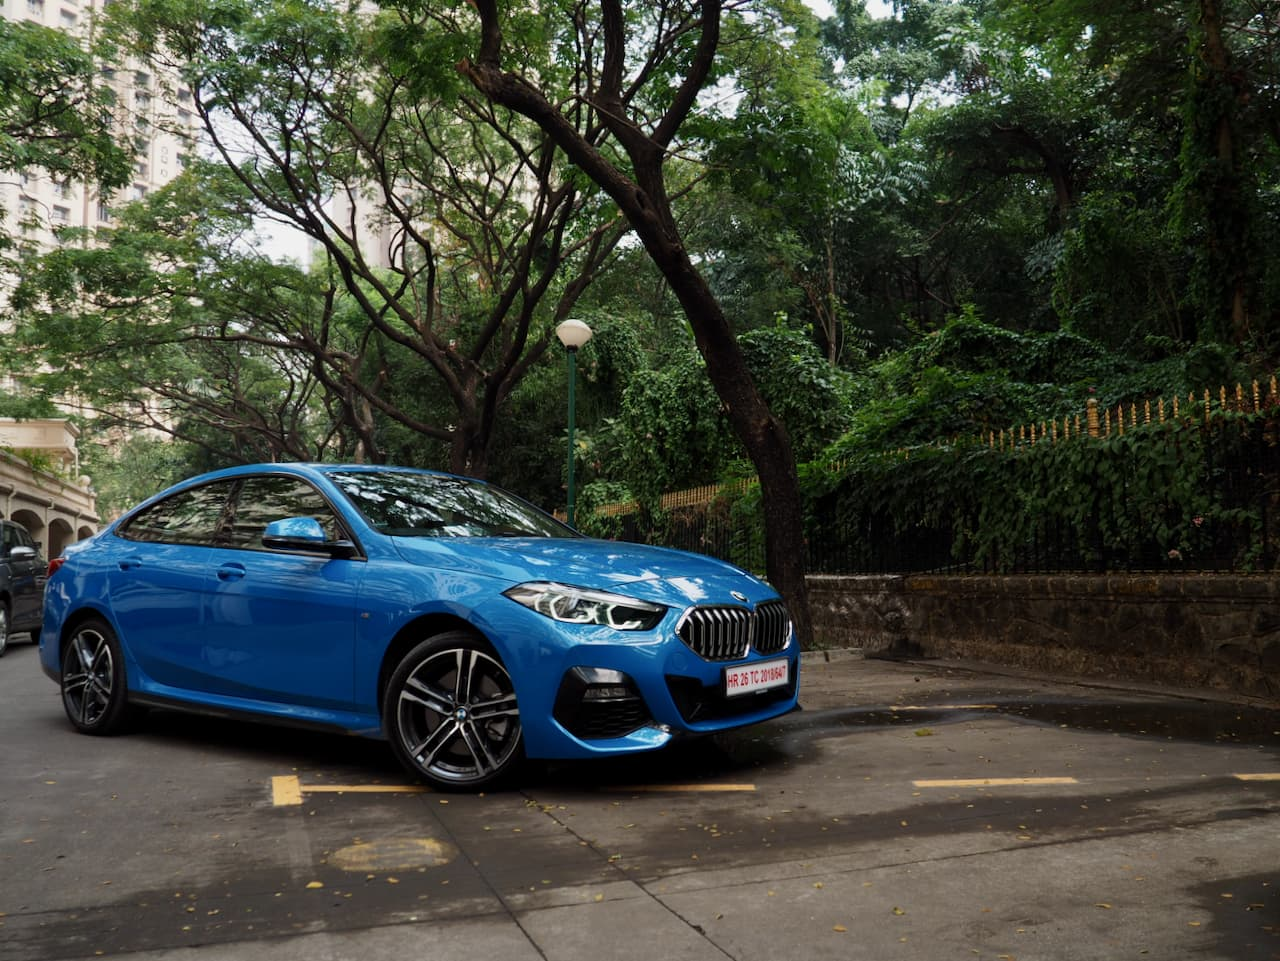 BMW 2 Series Front 2